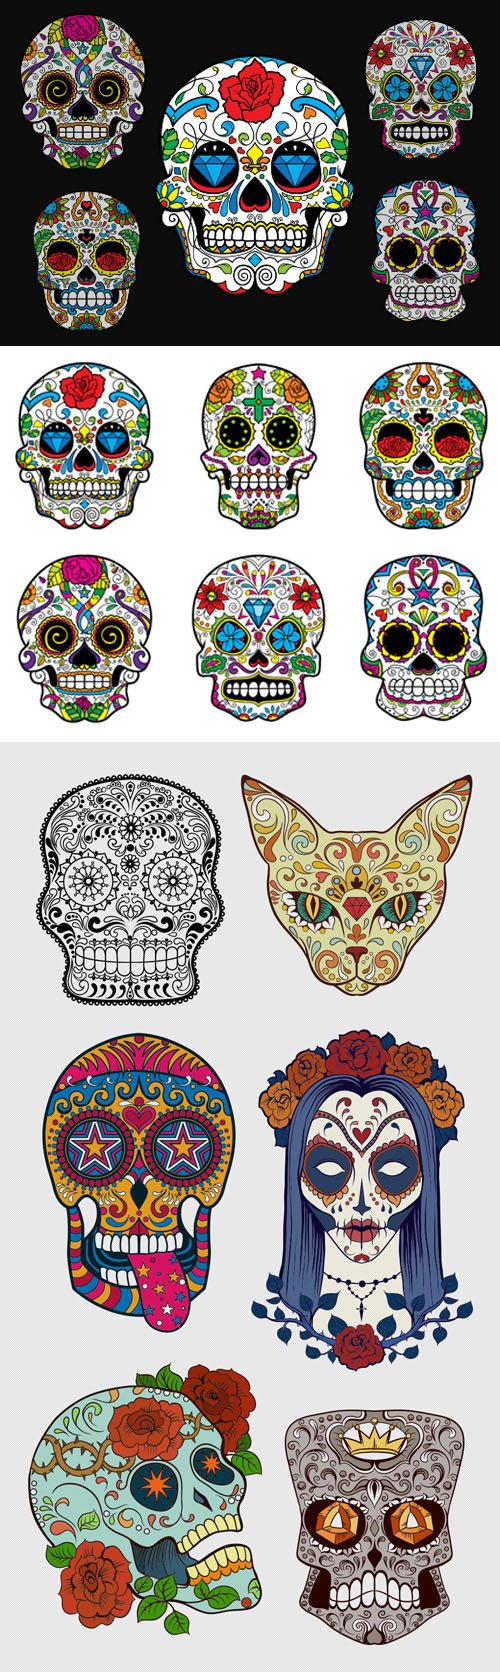 Sugar Skulls Vector Worth $30